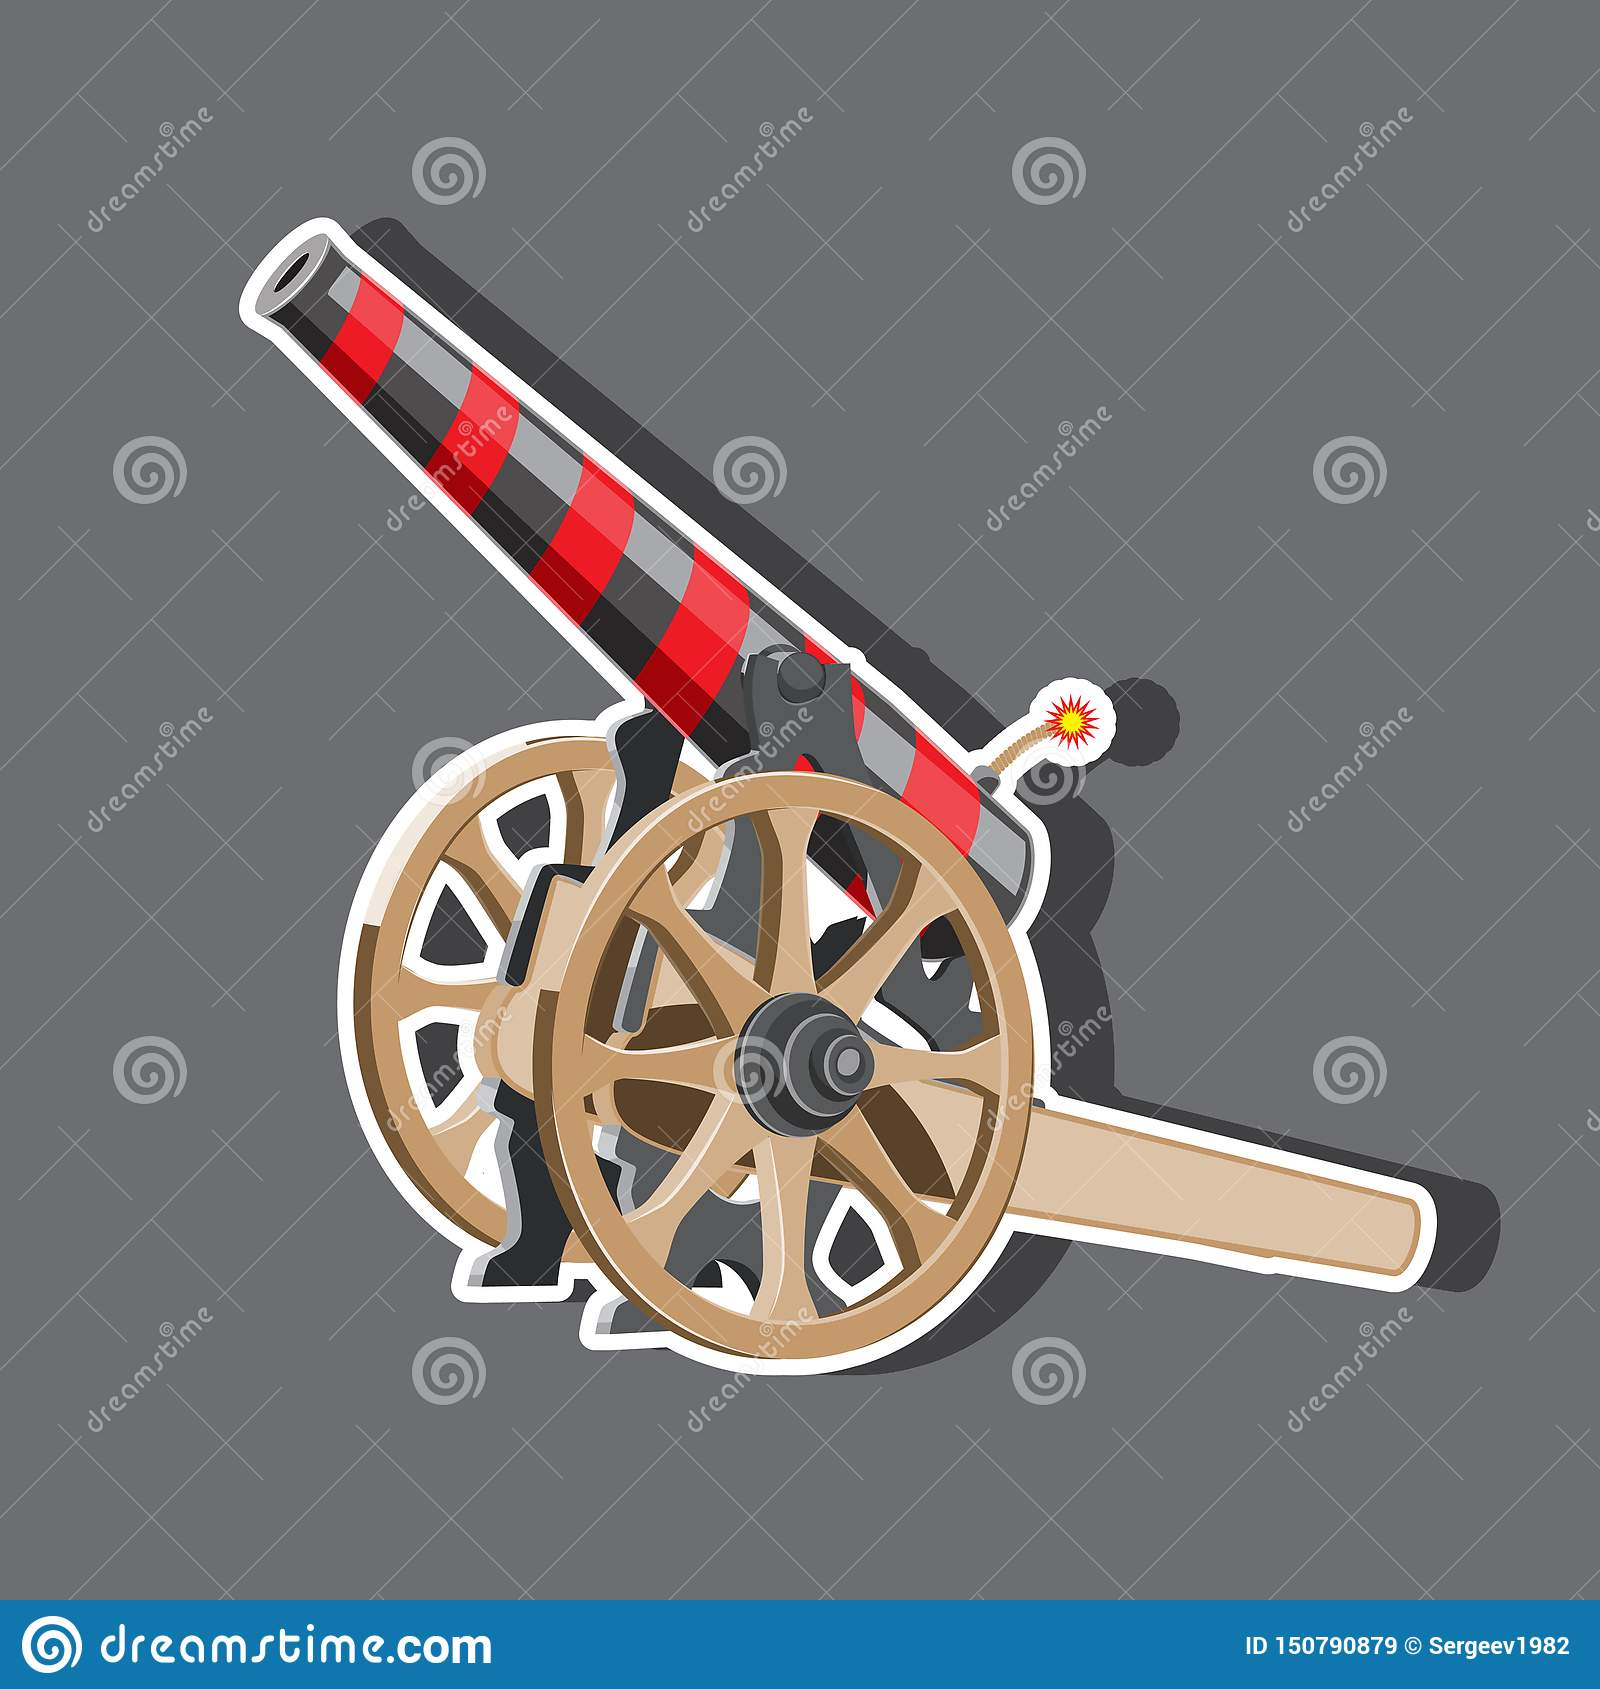 Cartoon illustration of cannon with cannonballs, weapon icon, EPS